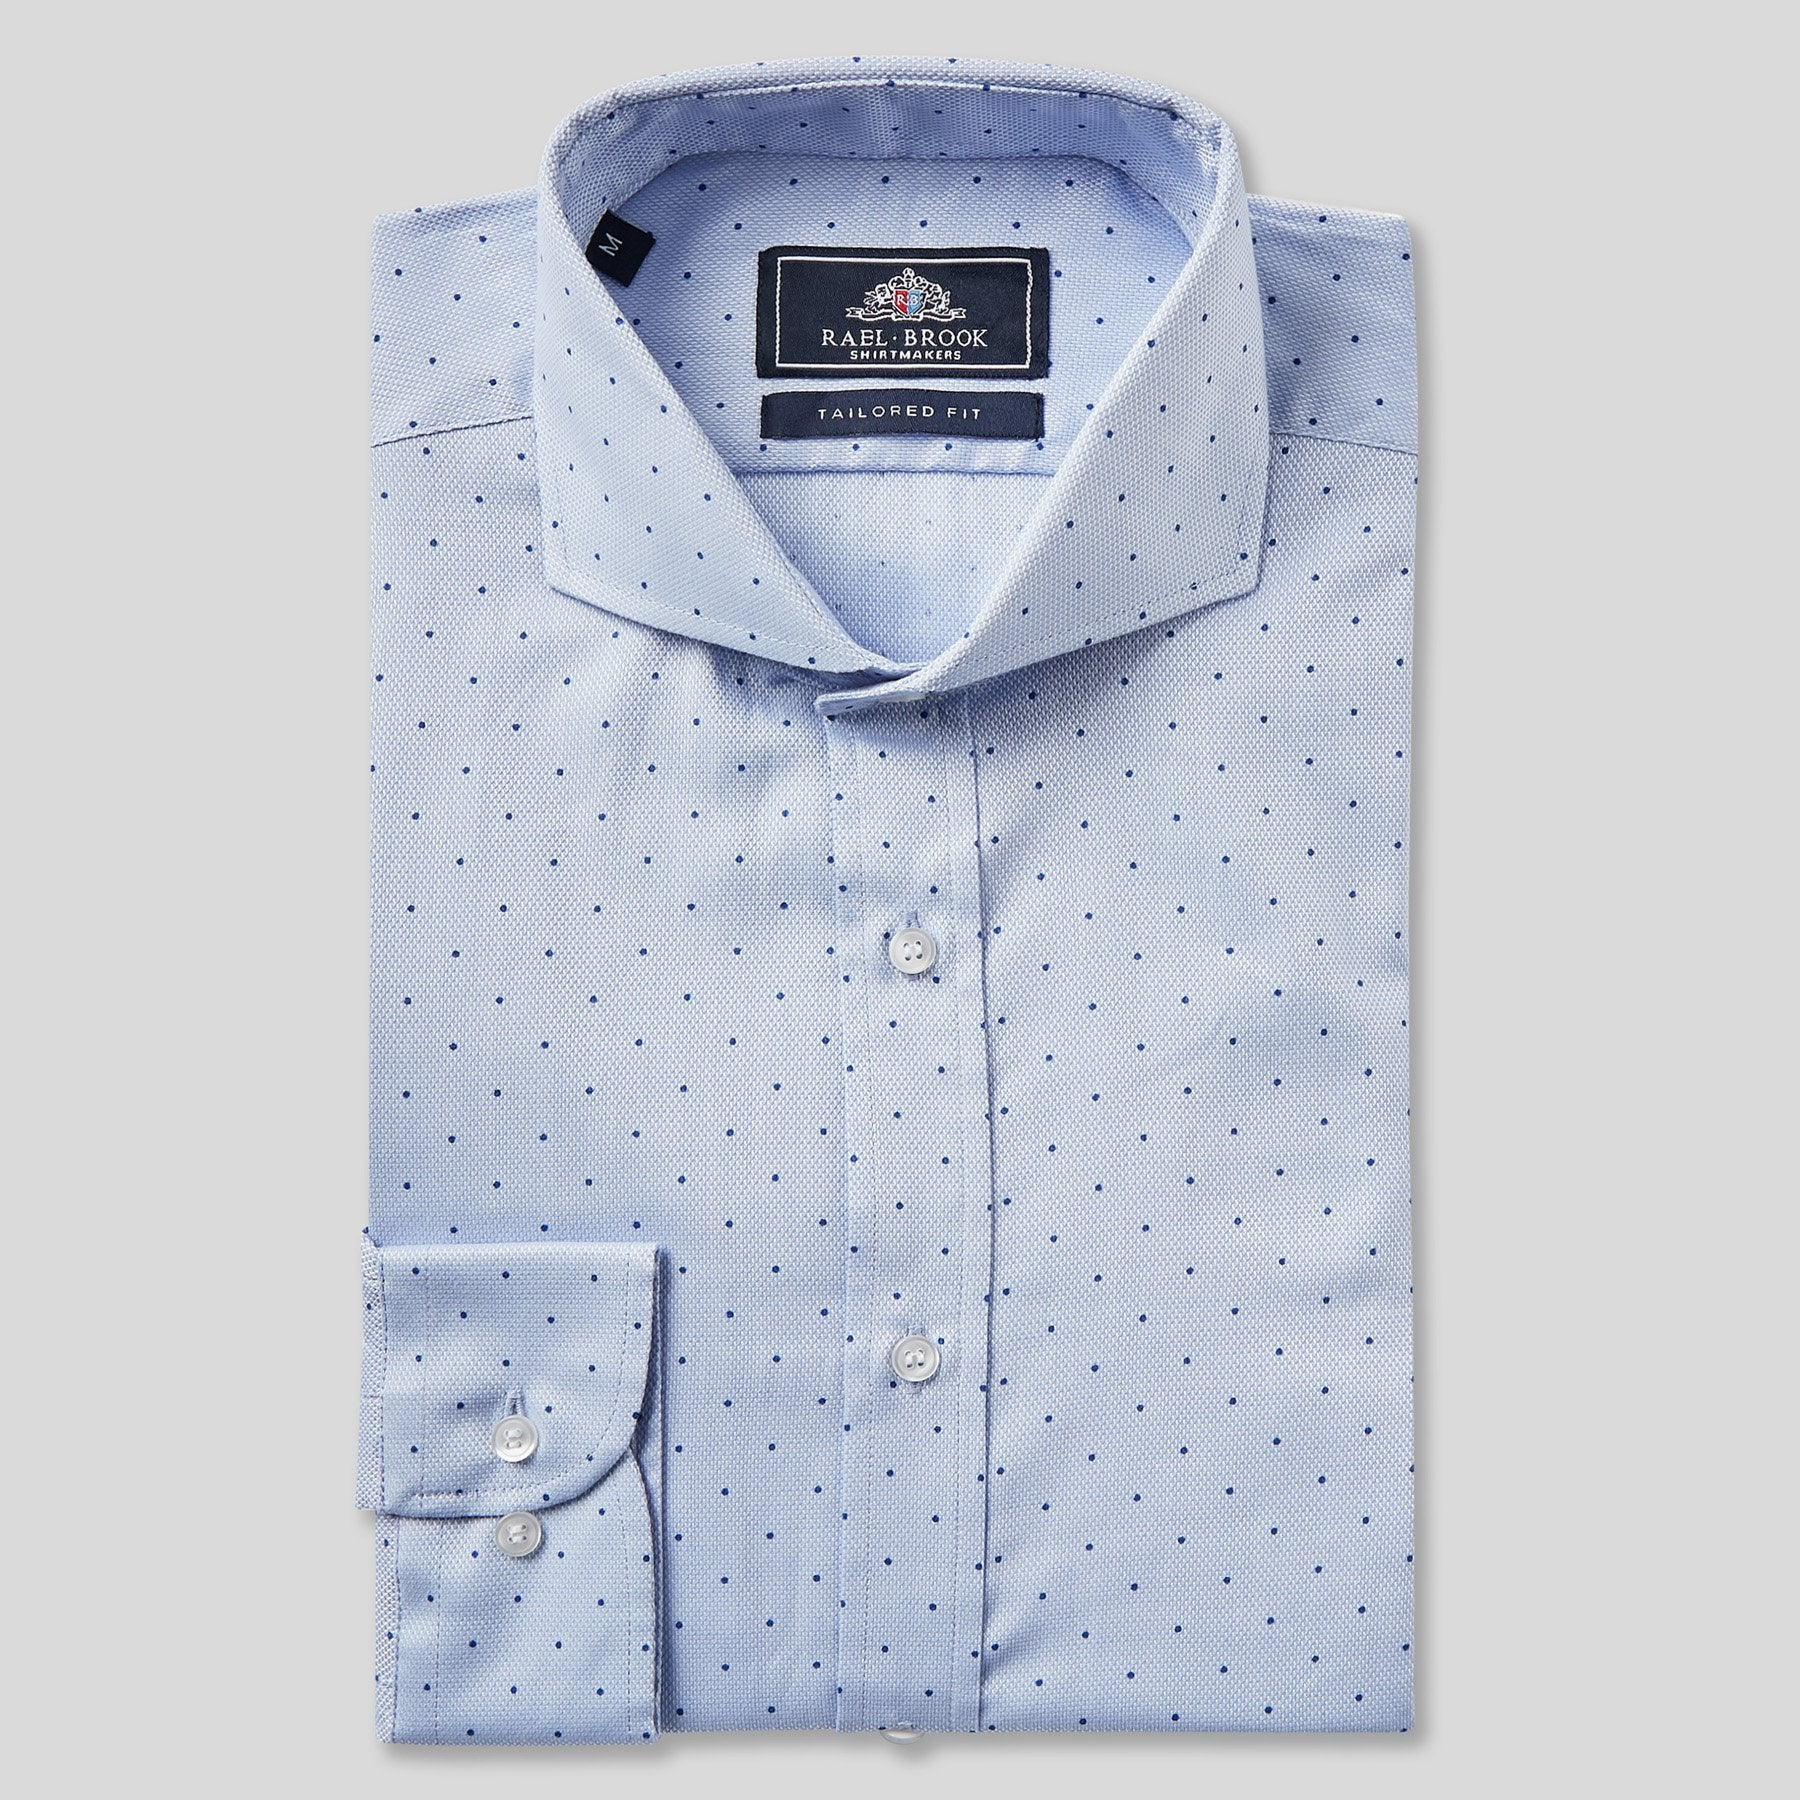 4851-Rael-Brook-Tailored-Fit-Blue-Polka-Dot-Single-Cuff-Shirt-1